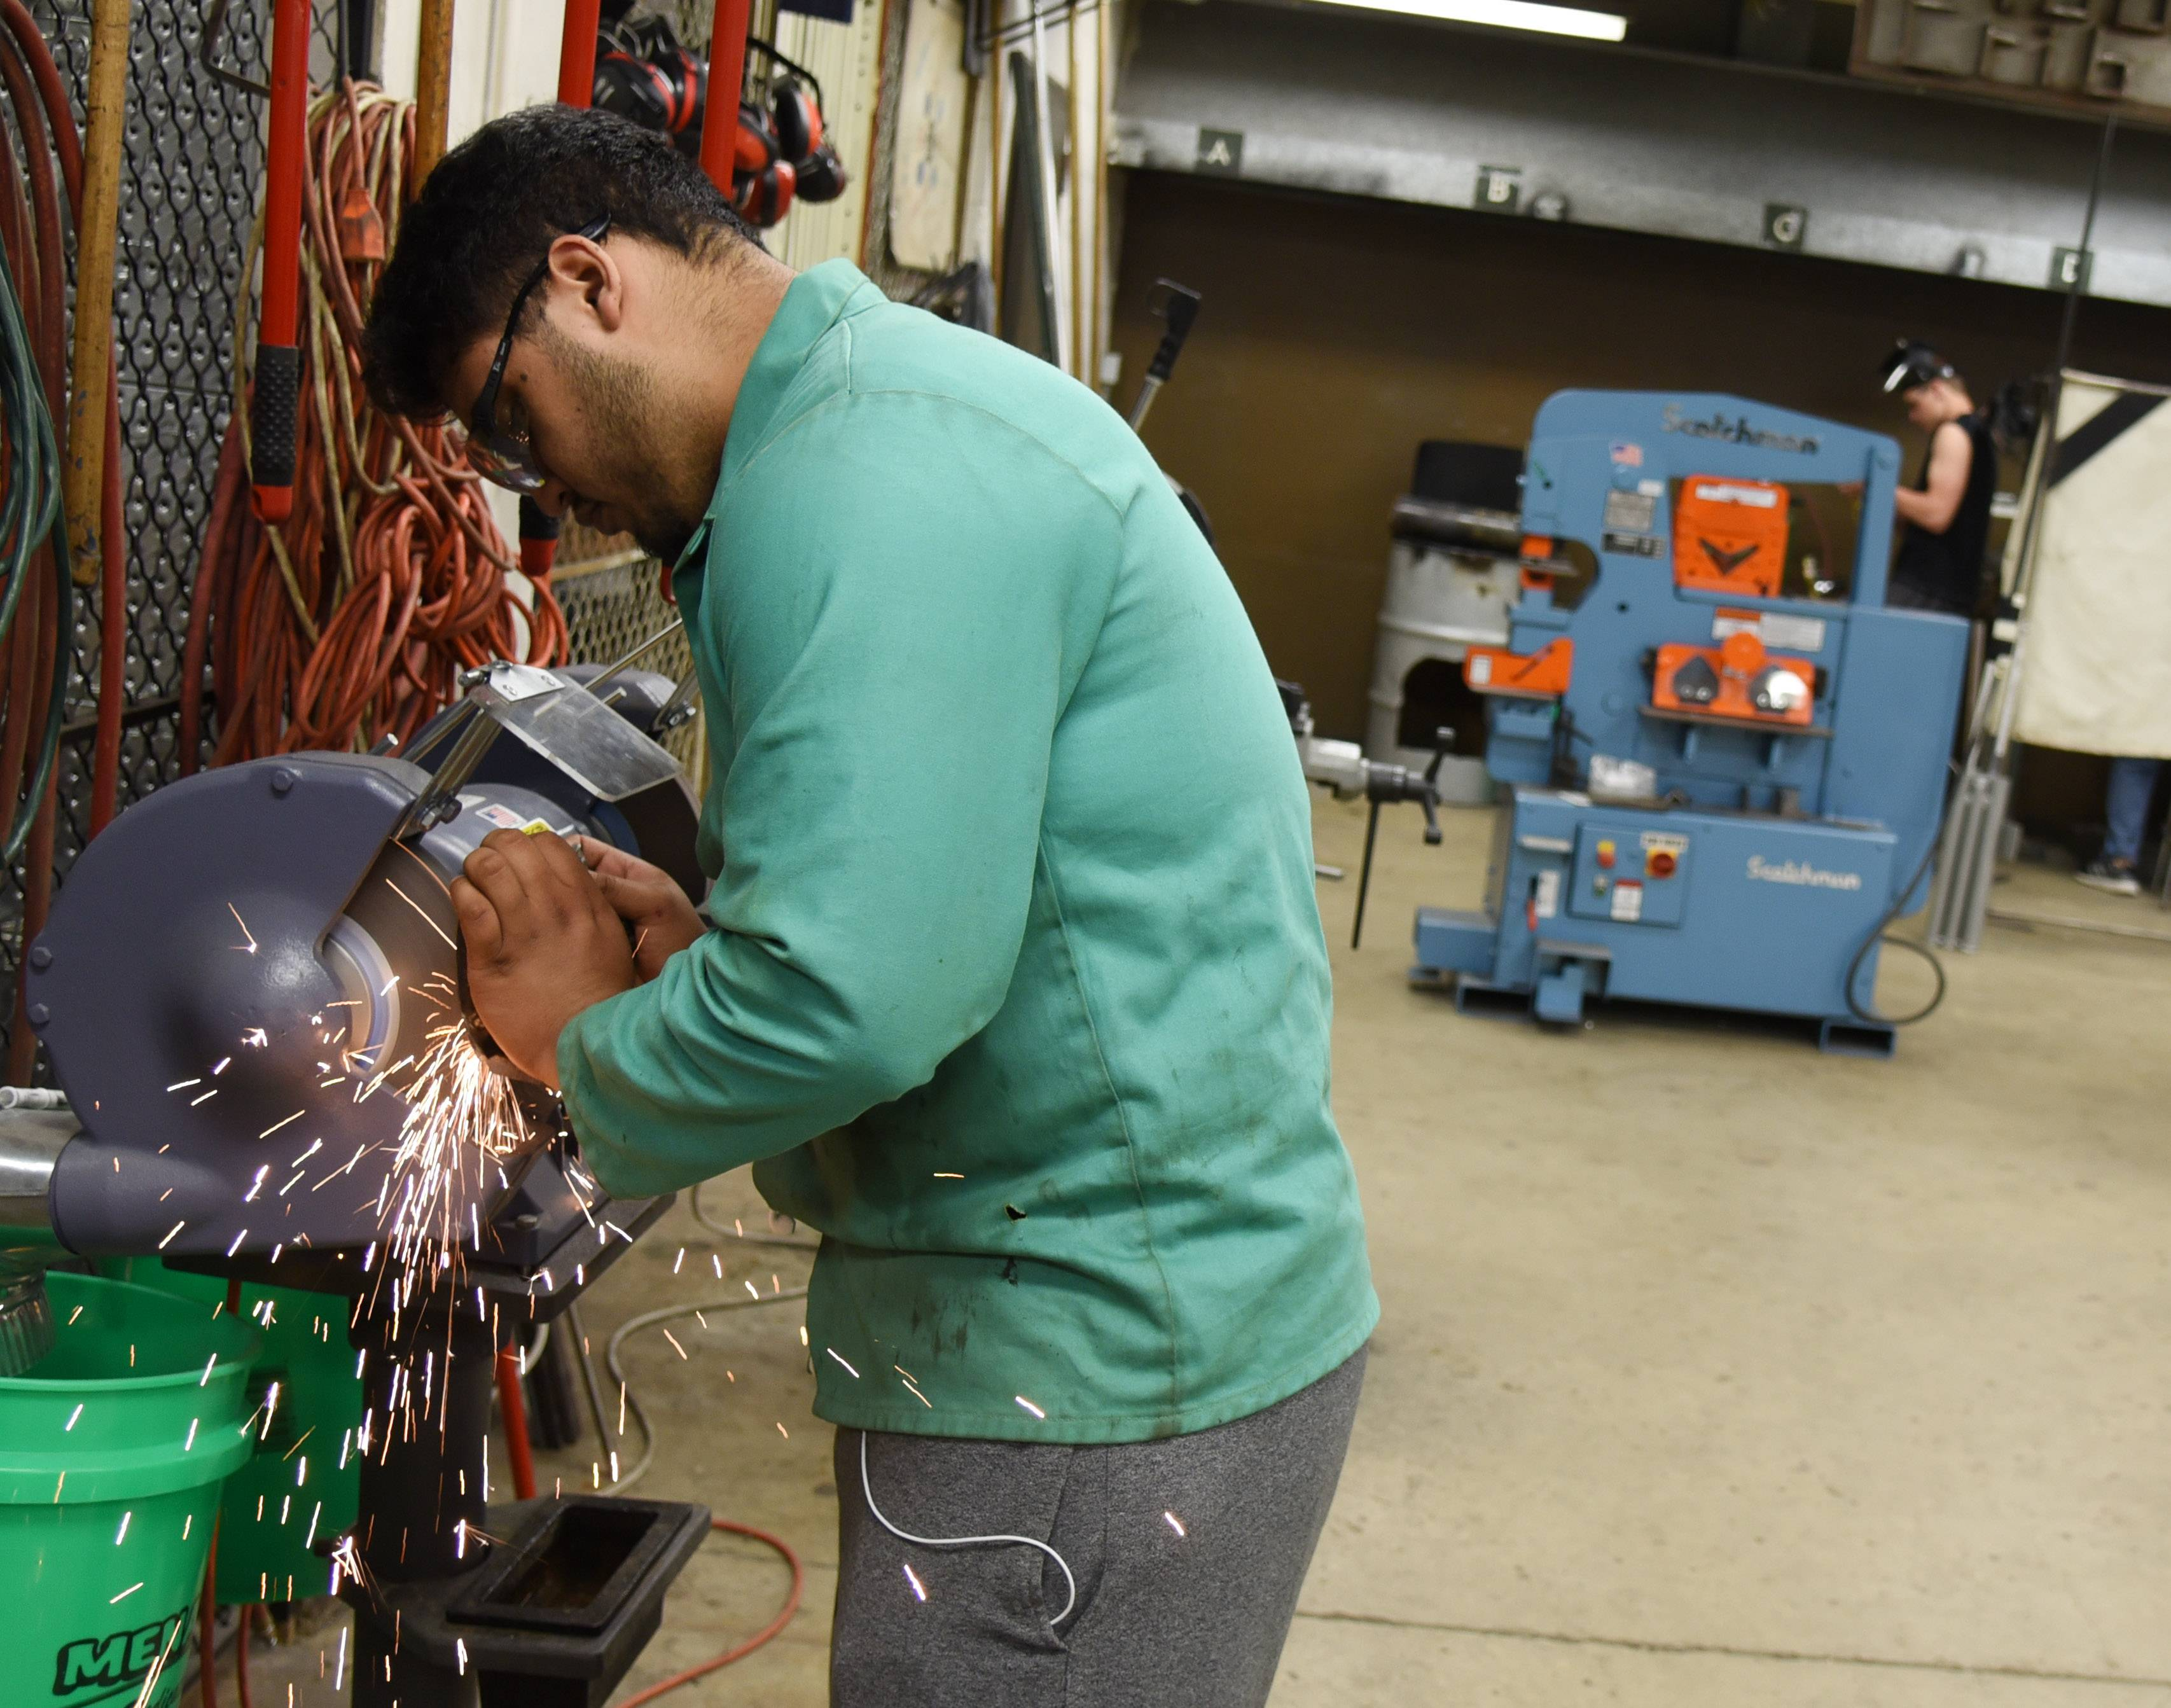 U-46 seeks to start accredited regional welding program